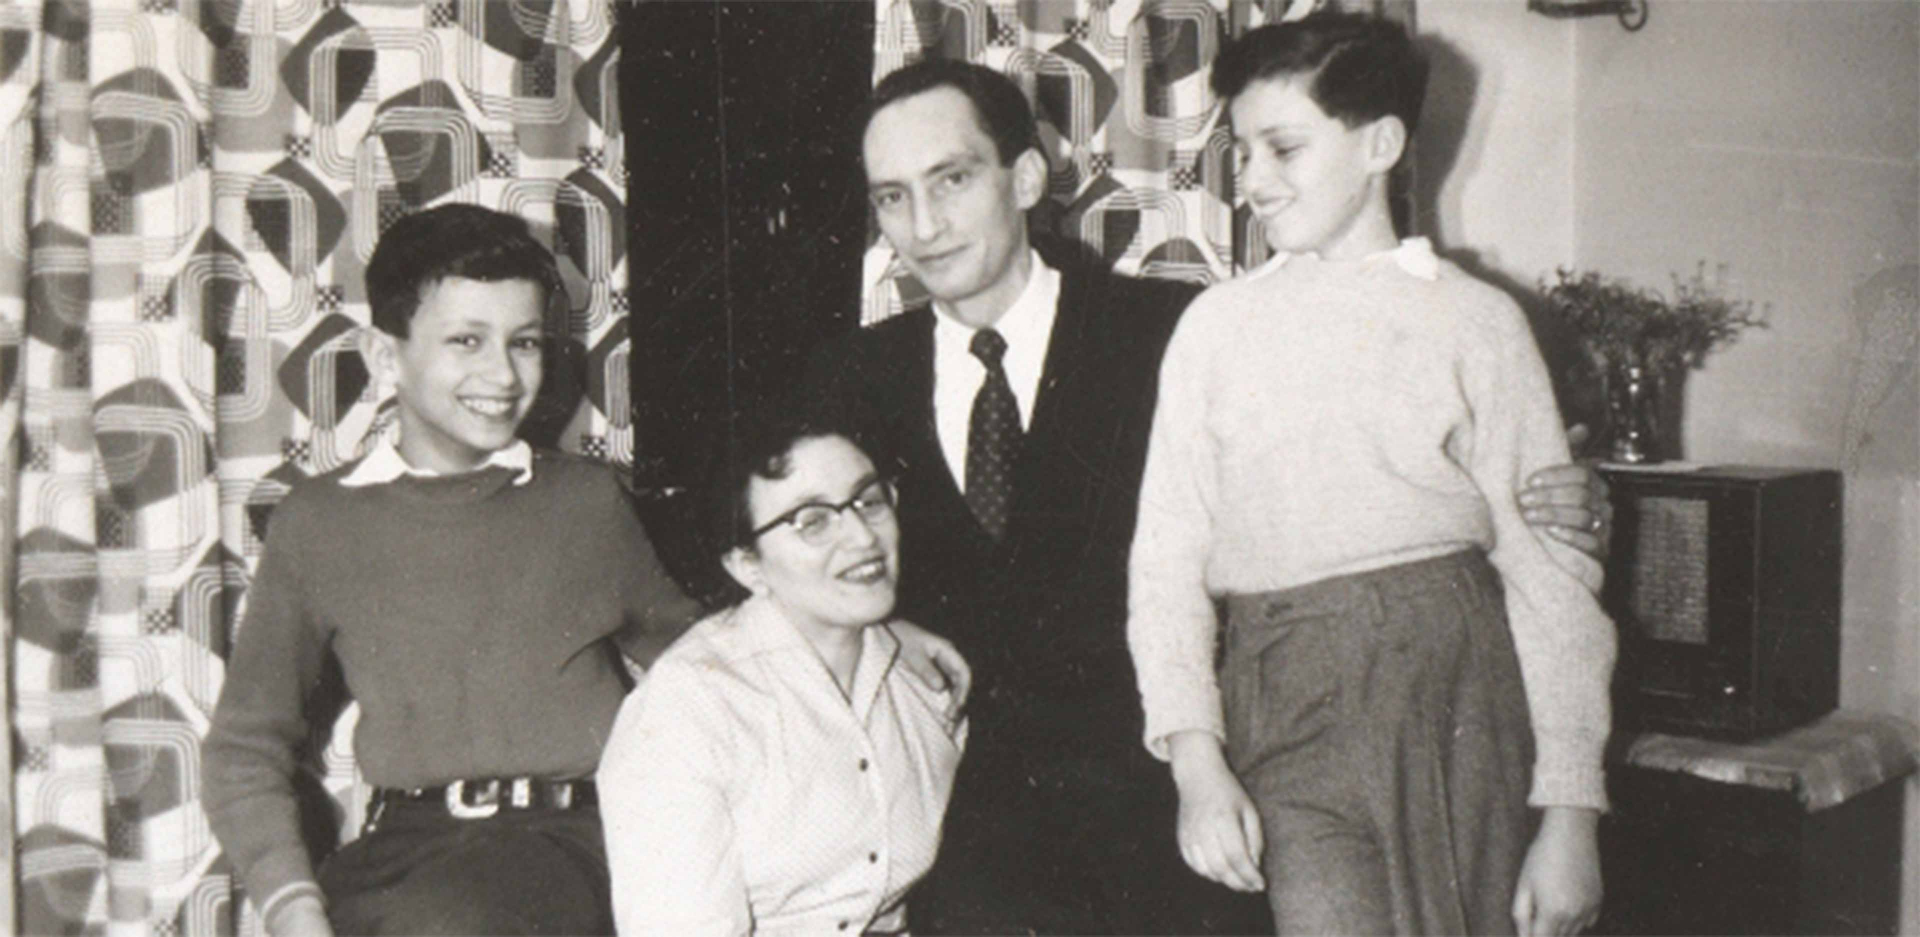 The photo shows two adults and two children in an apartment with patterned curtains. The two boys are standing to the right and left of the adults, in the middle is a woman with glasses, next to her is a man in a suit.